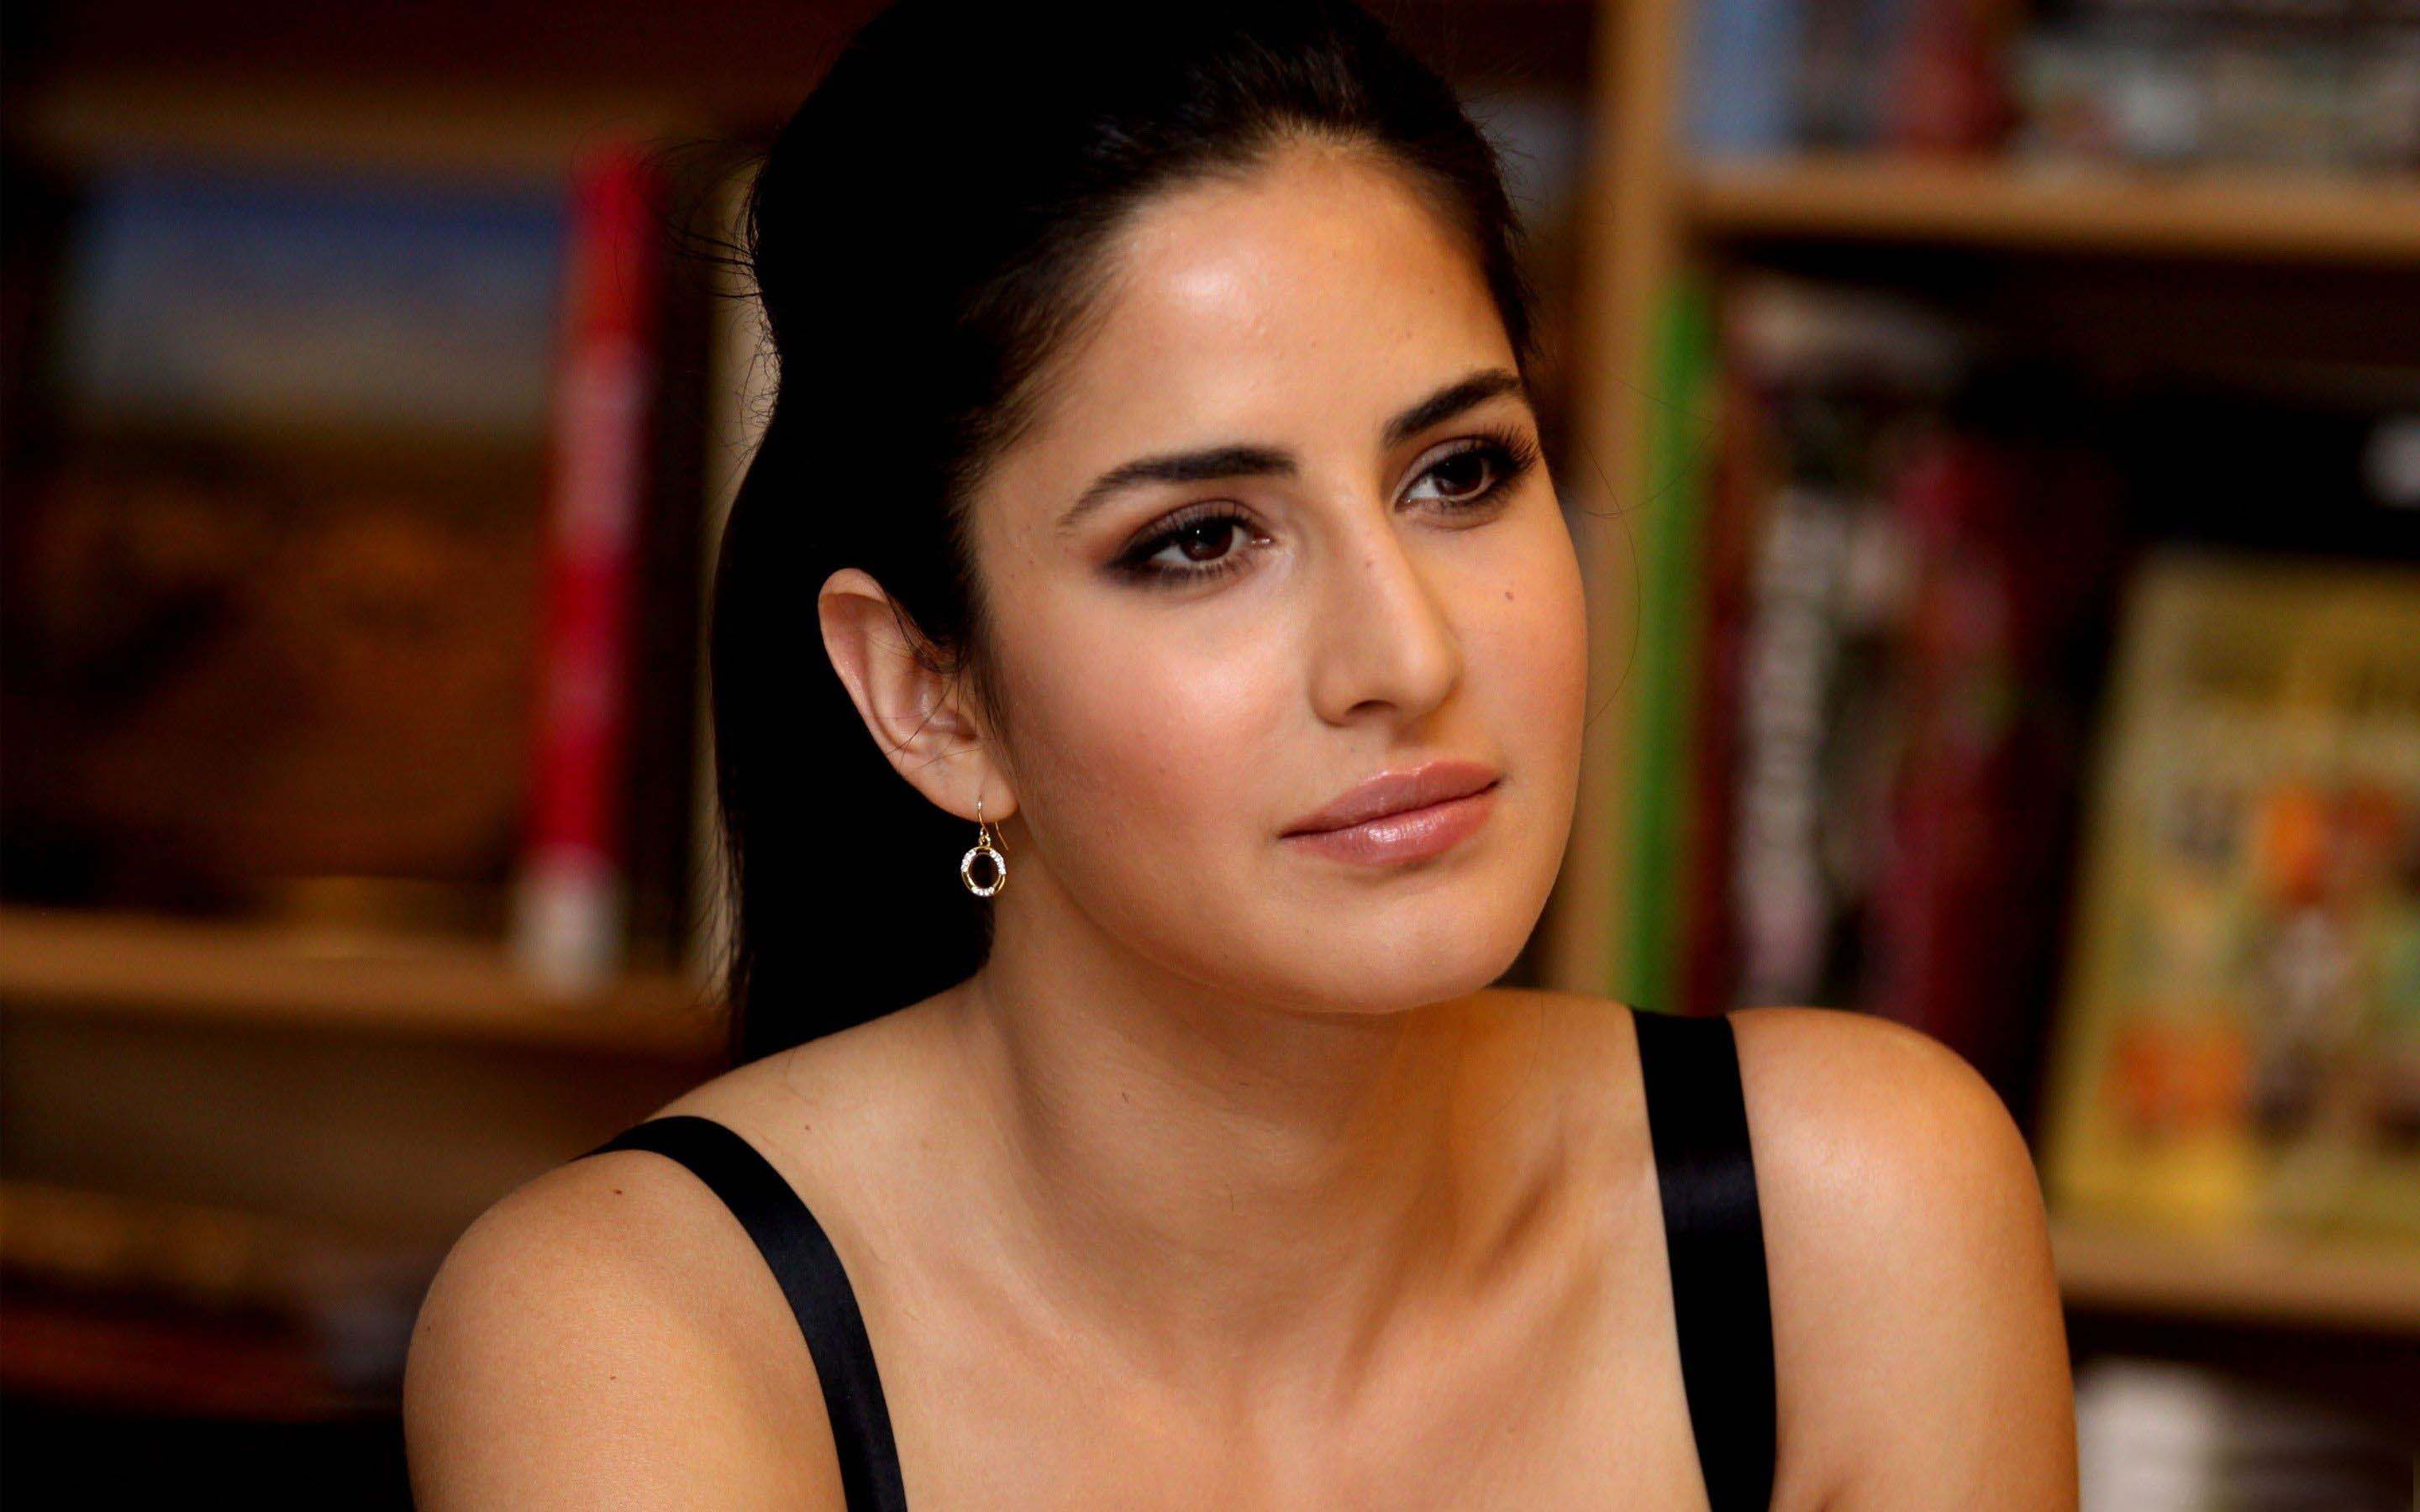 katrina kaif image photos picture download in mobile